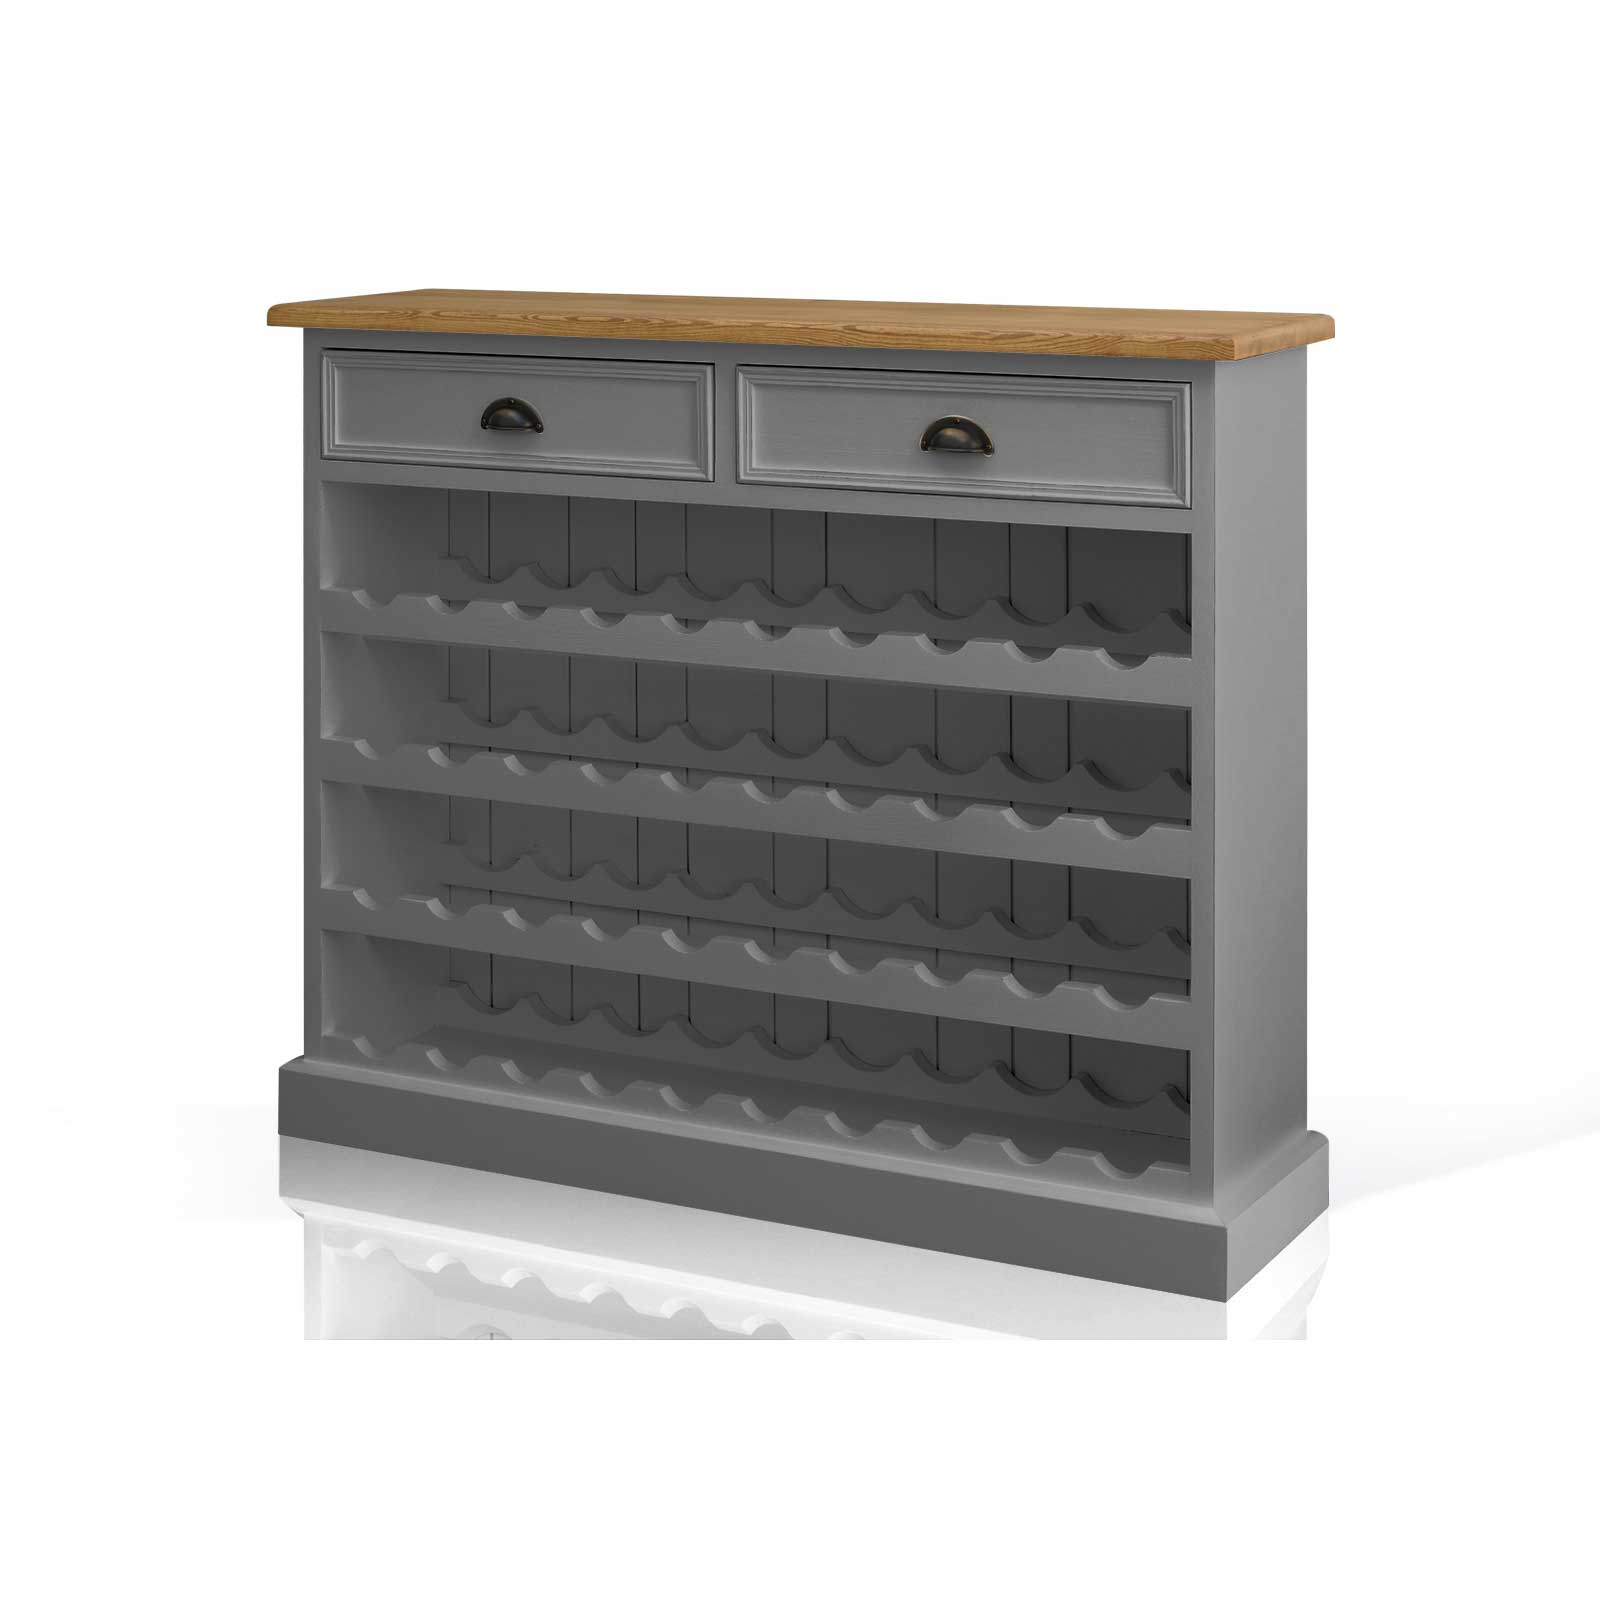 Soho Dark Grey Painted Large Wine Rack_2